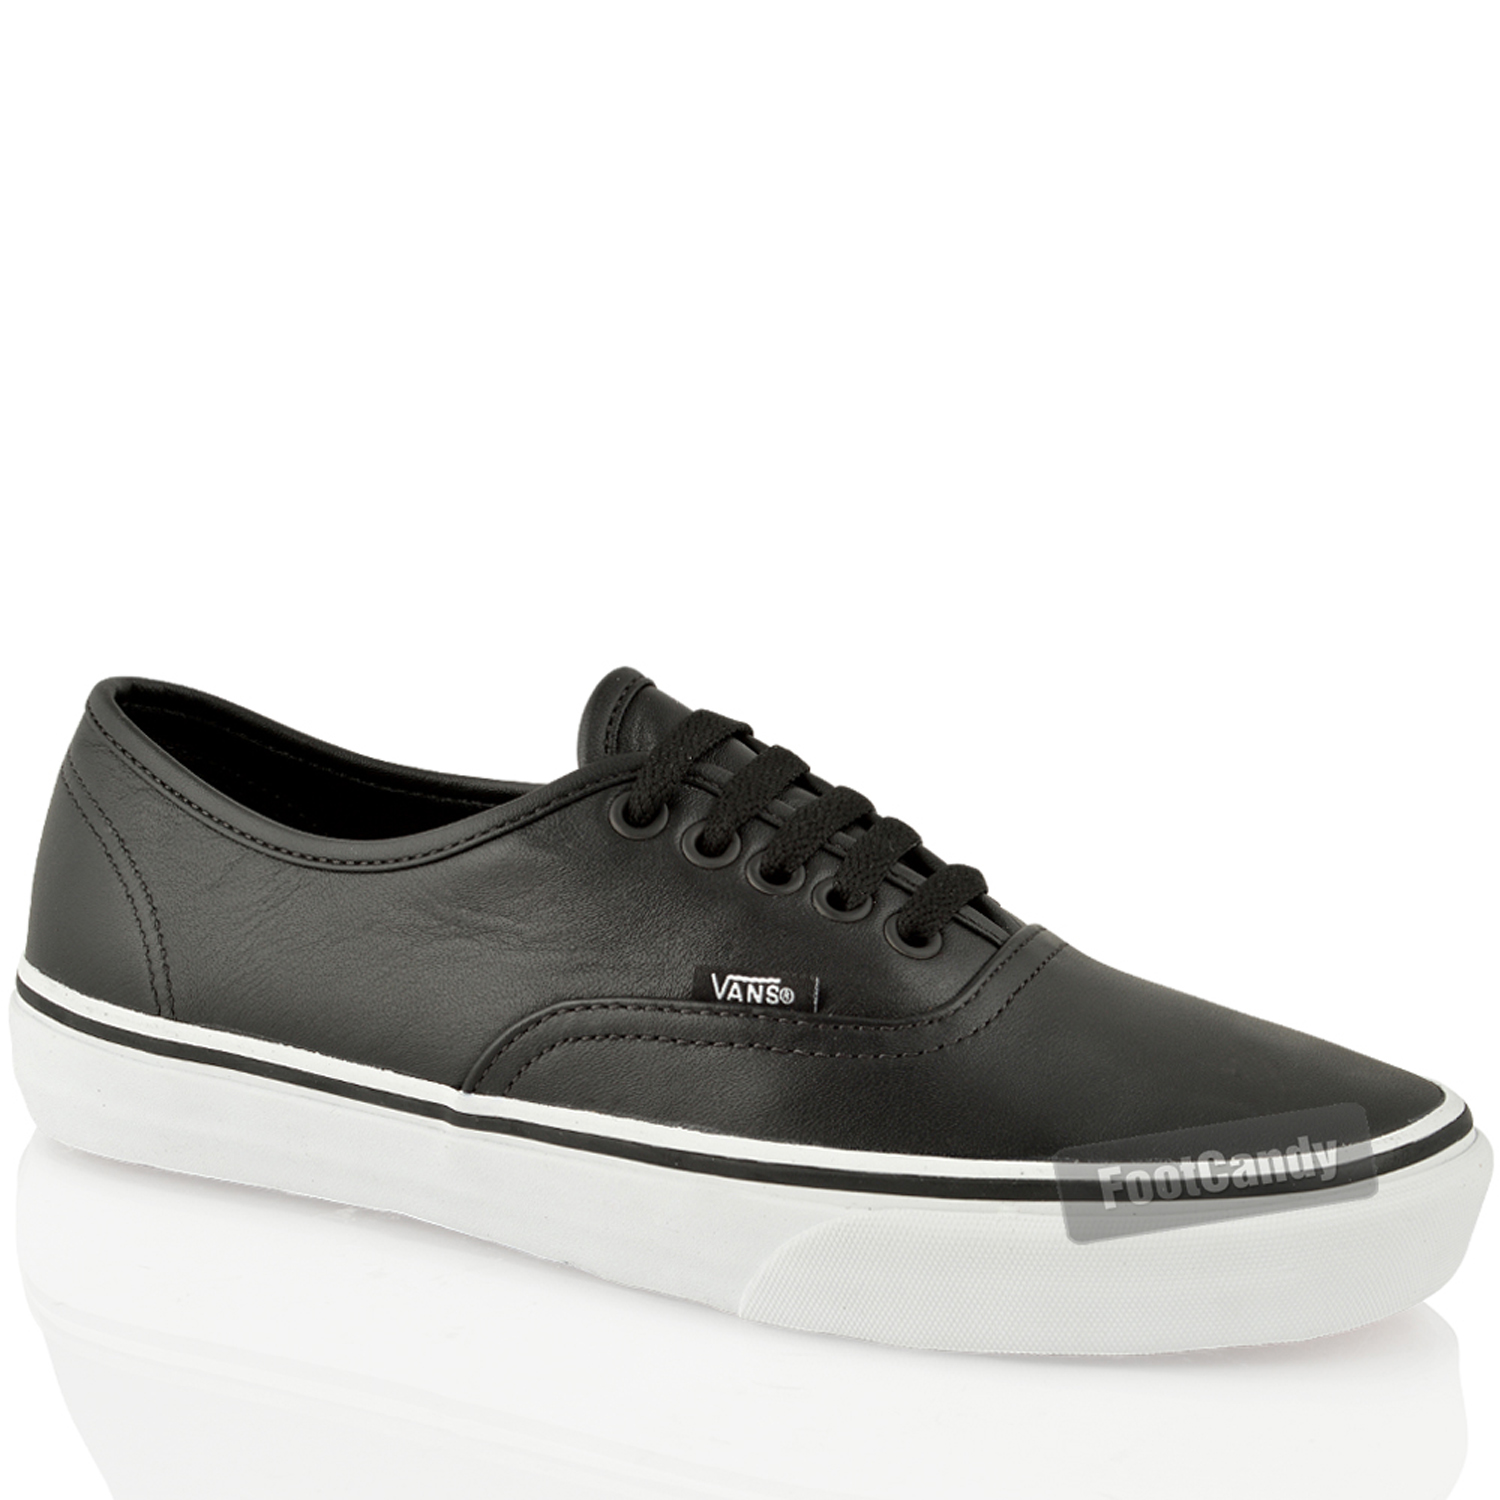 AUTHENTIC-VANS-MENS-WOMENS-BLACK-WHITE-LEATHER-SNEAKERS-TRAINERS-SHOES-SIZE